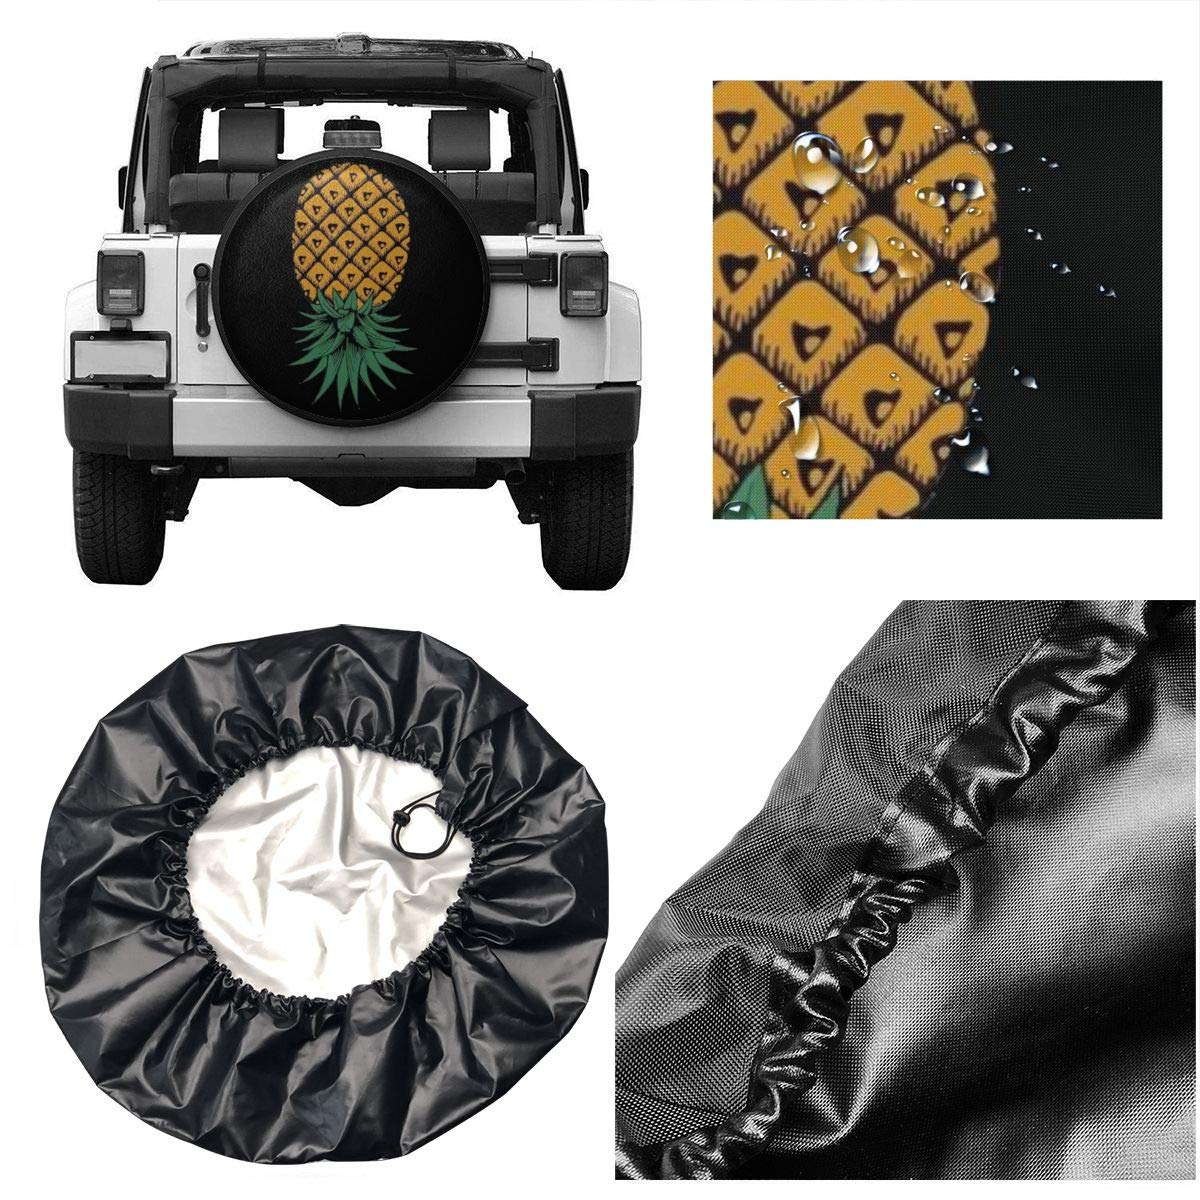 RV JOMMP-PO Upside Down Pineapple Symbol Spare Tire Cover Waterproof Dust-Proof Universal Spare Wheel Tire Cover Fit for Jeep,Trailer SUV and Many Vehicle